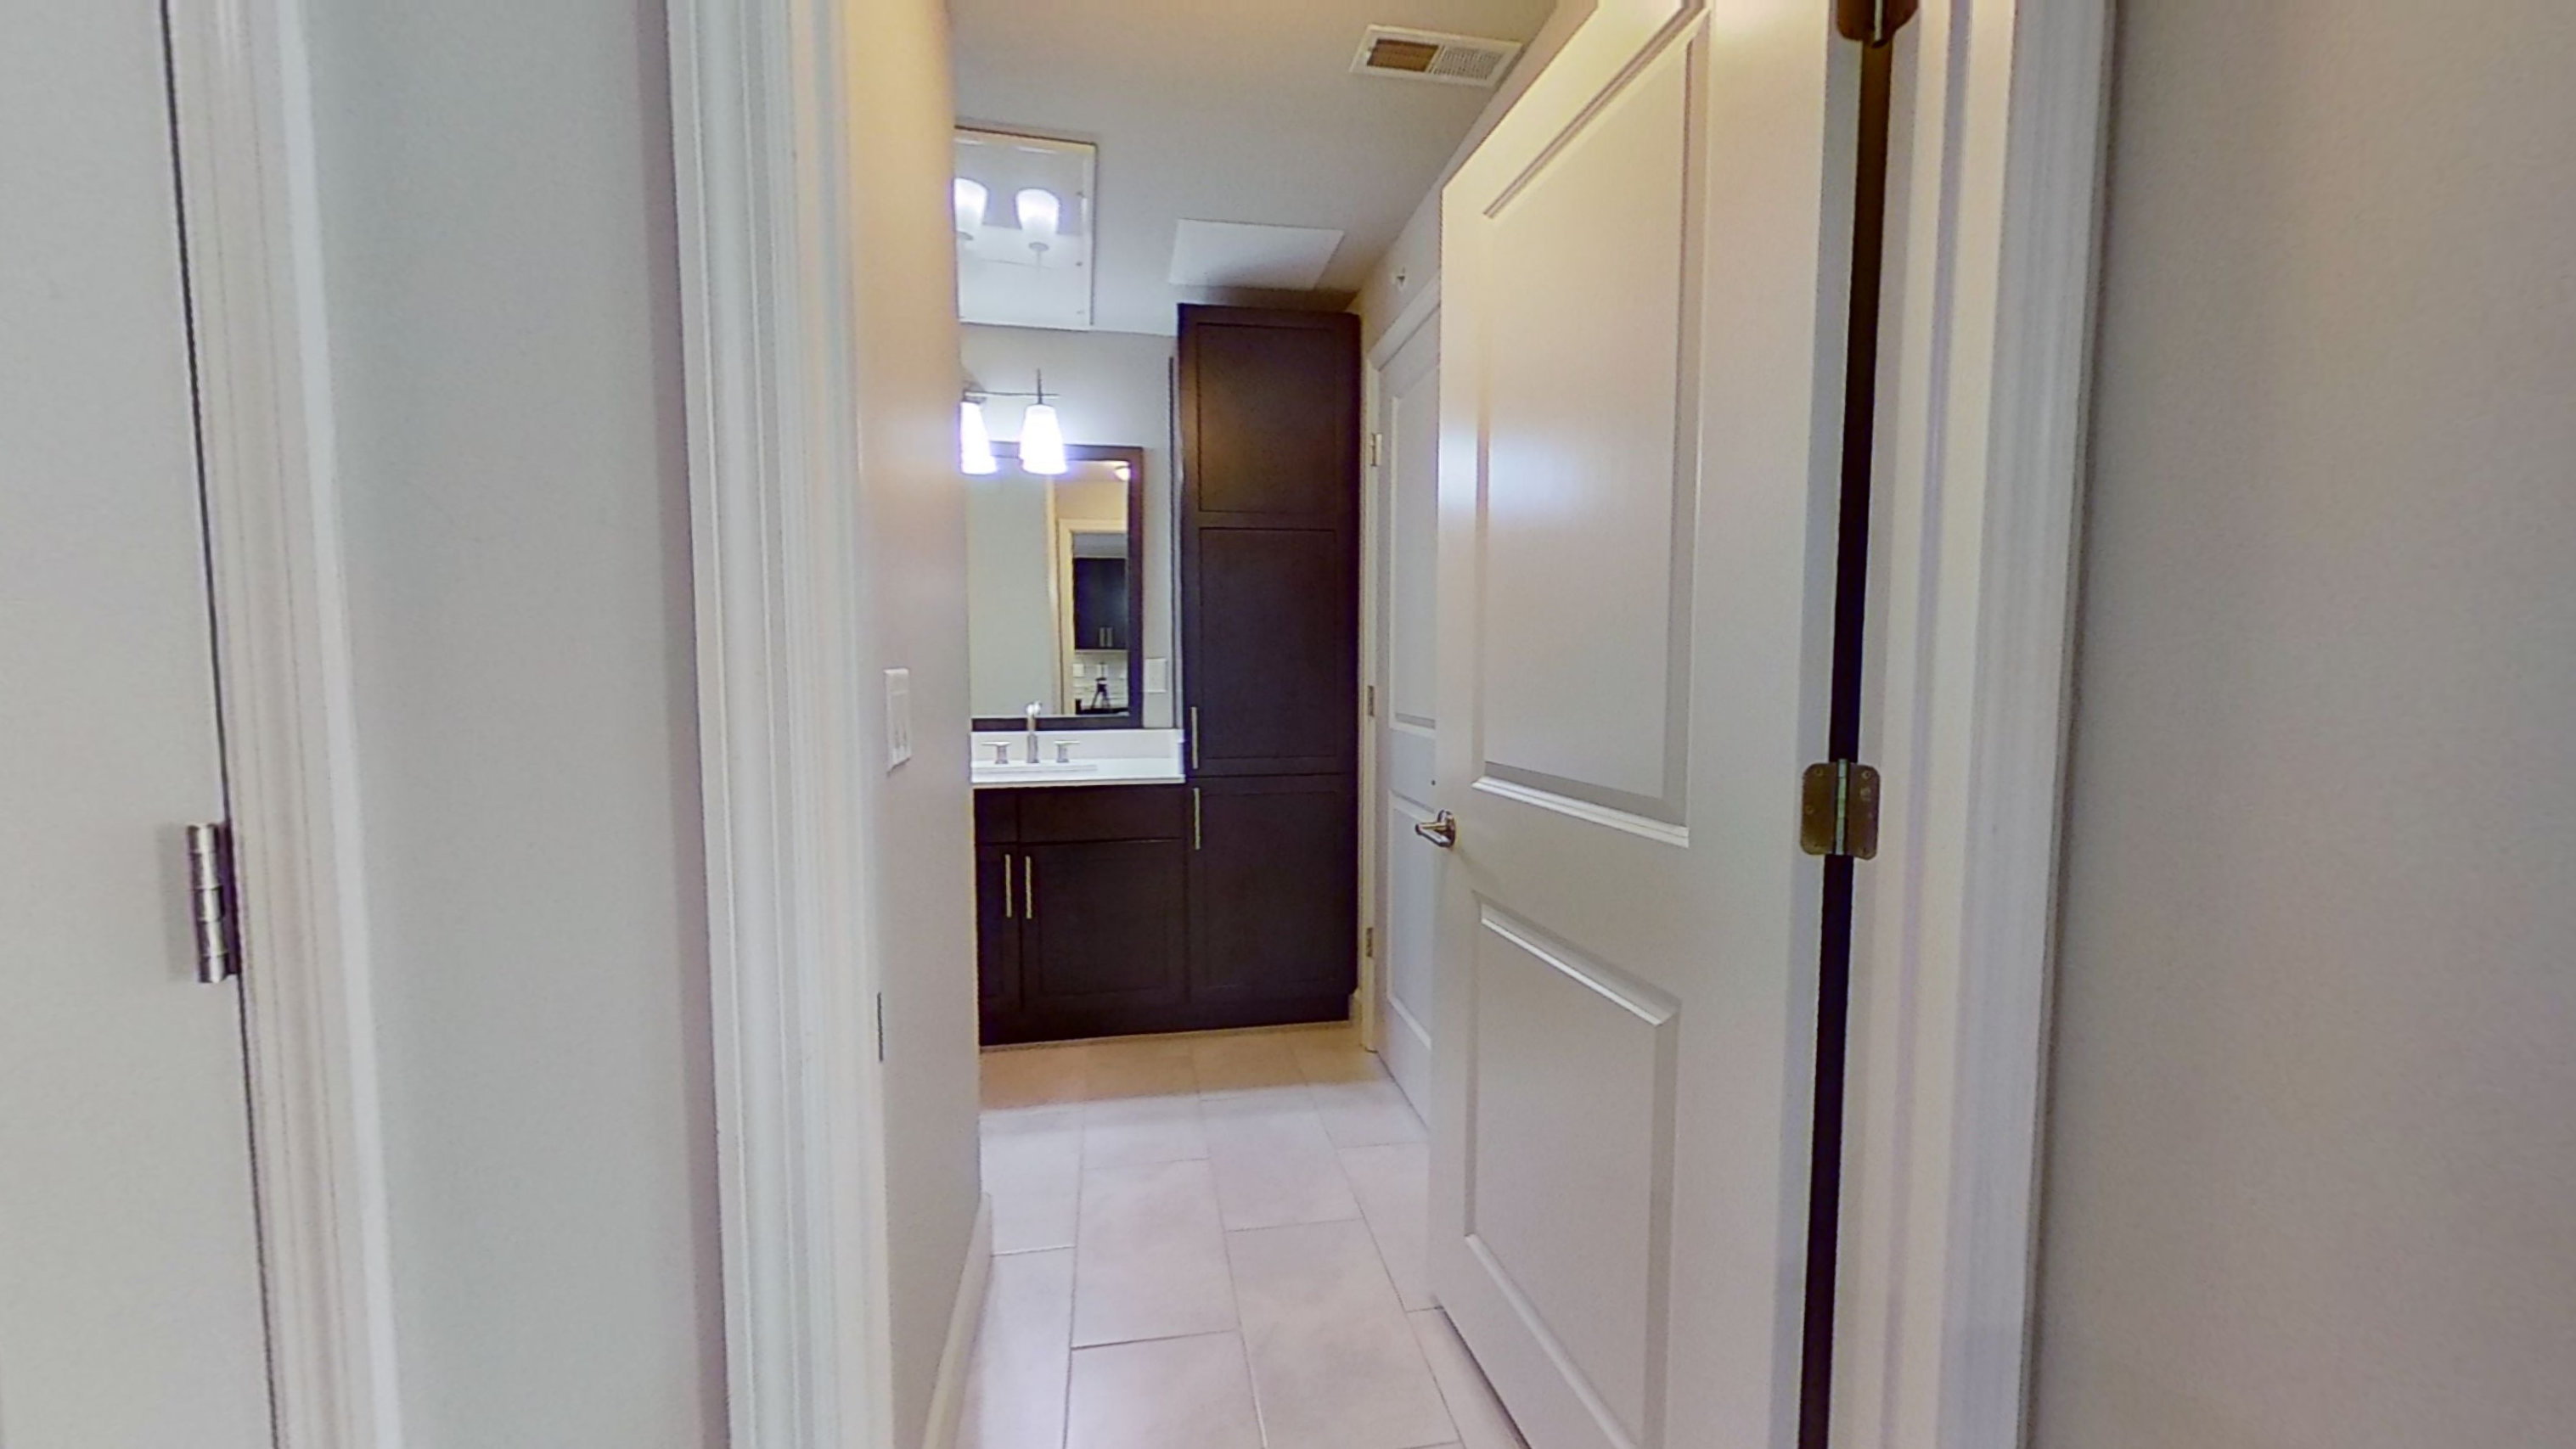 A2 Unit Bathroom at the Vue at Creve Coeur Apartments in Creve Coeur, MO